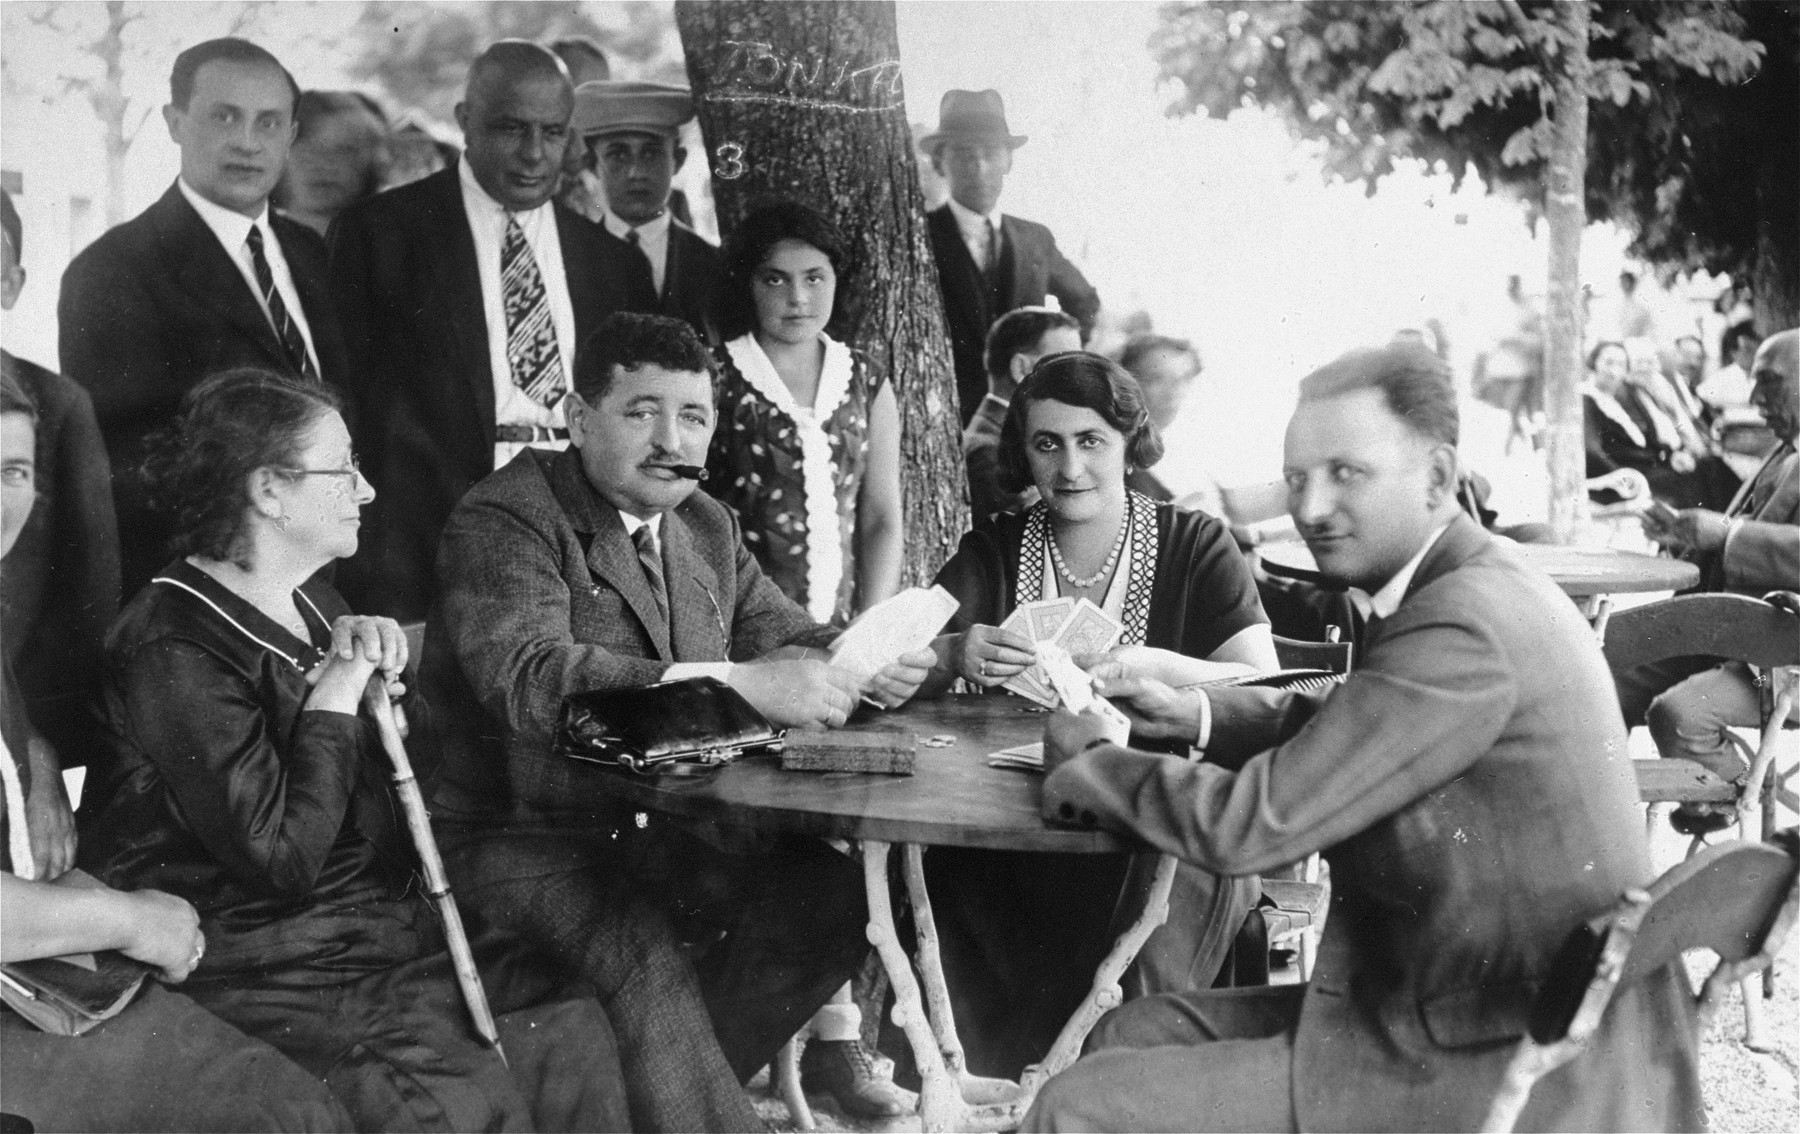 Members of the Gruenwald family play cards outside at a vacation resort in Croatia.